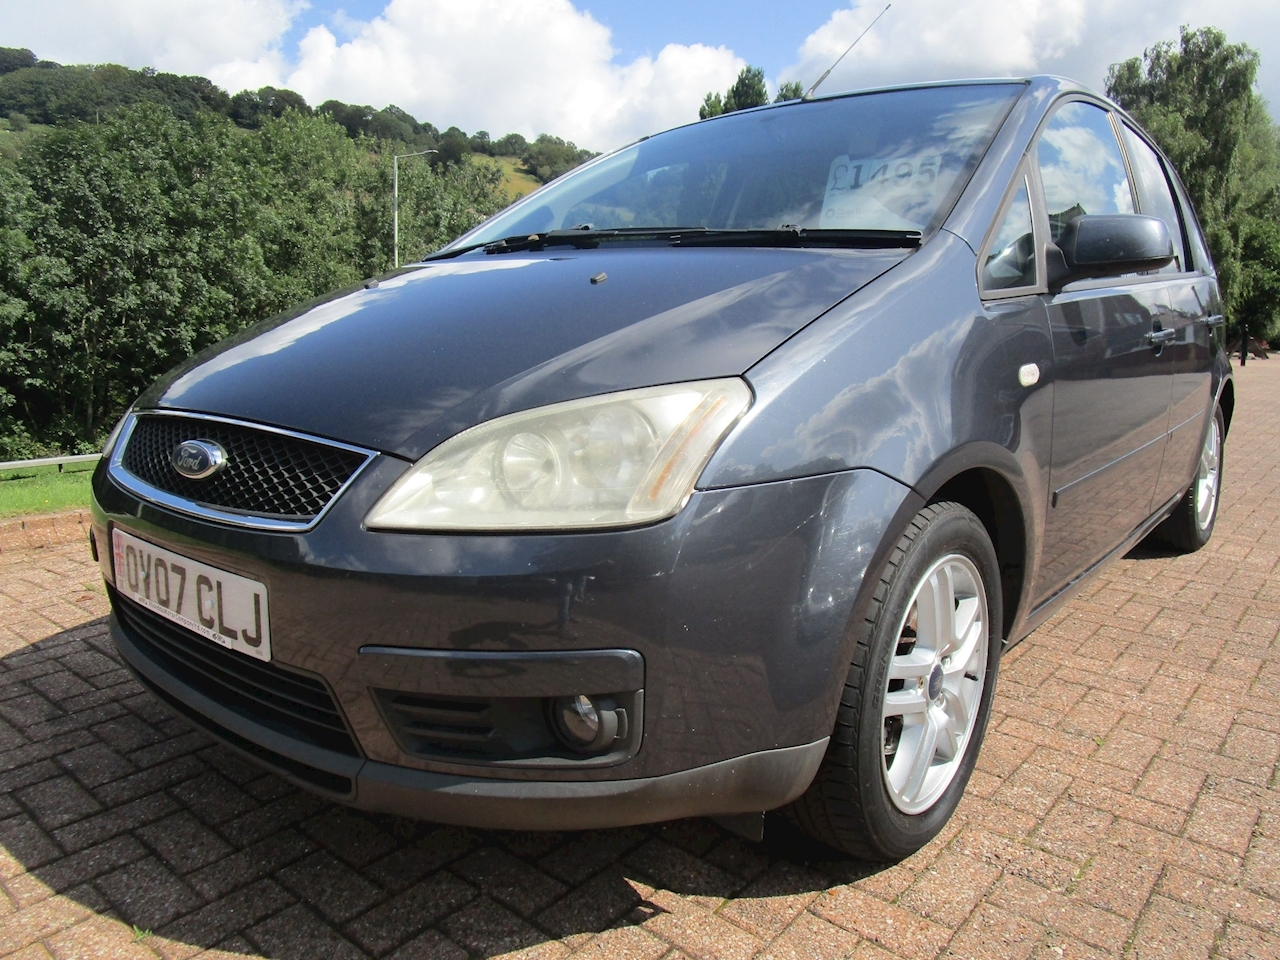 Focus C-Max Zetec Mpv 1.6 Manual Petrol